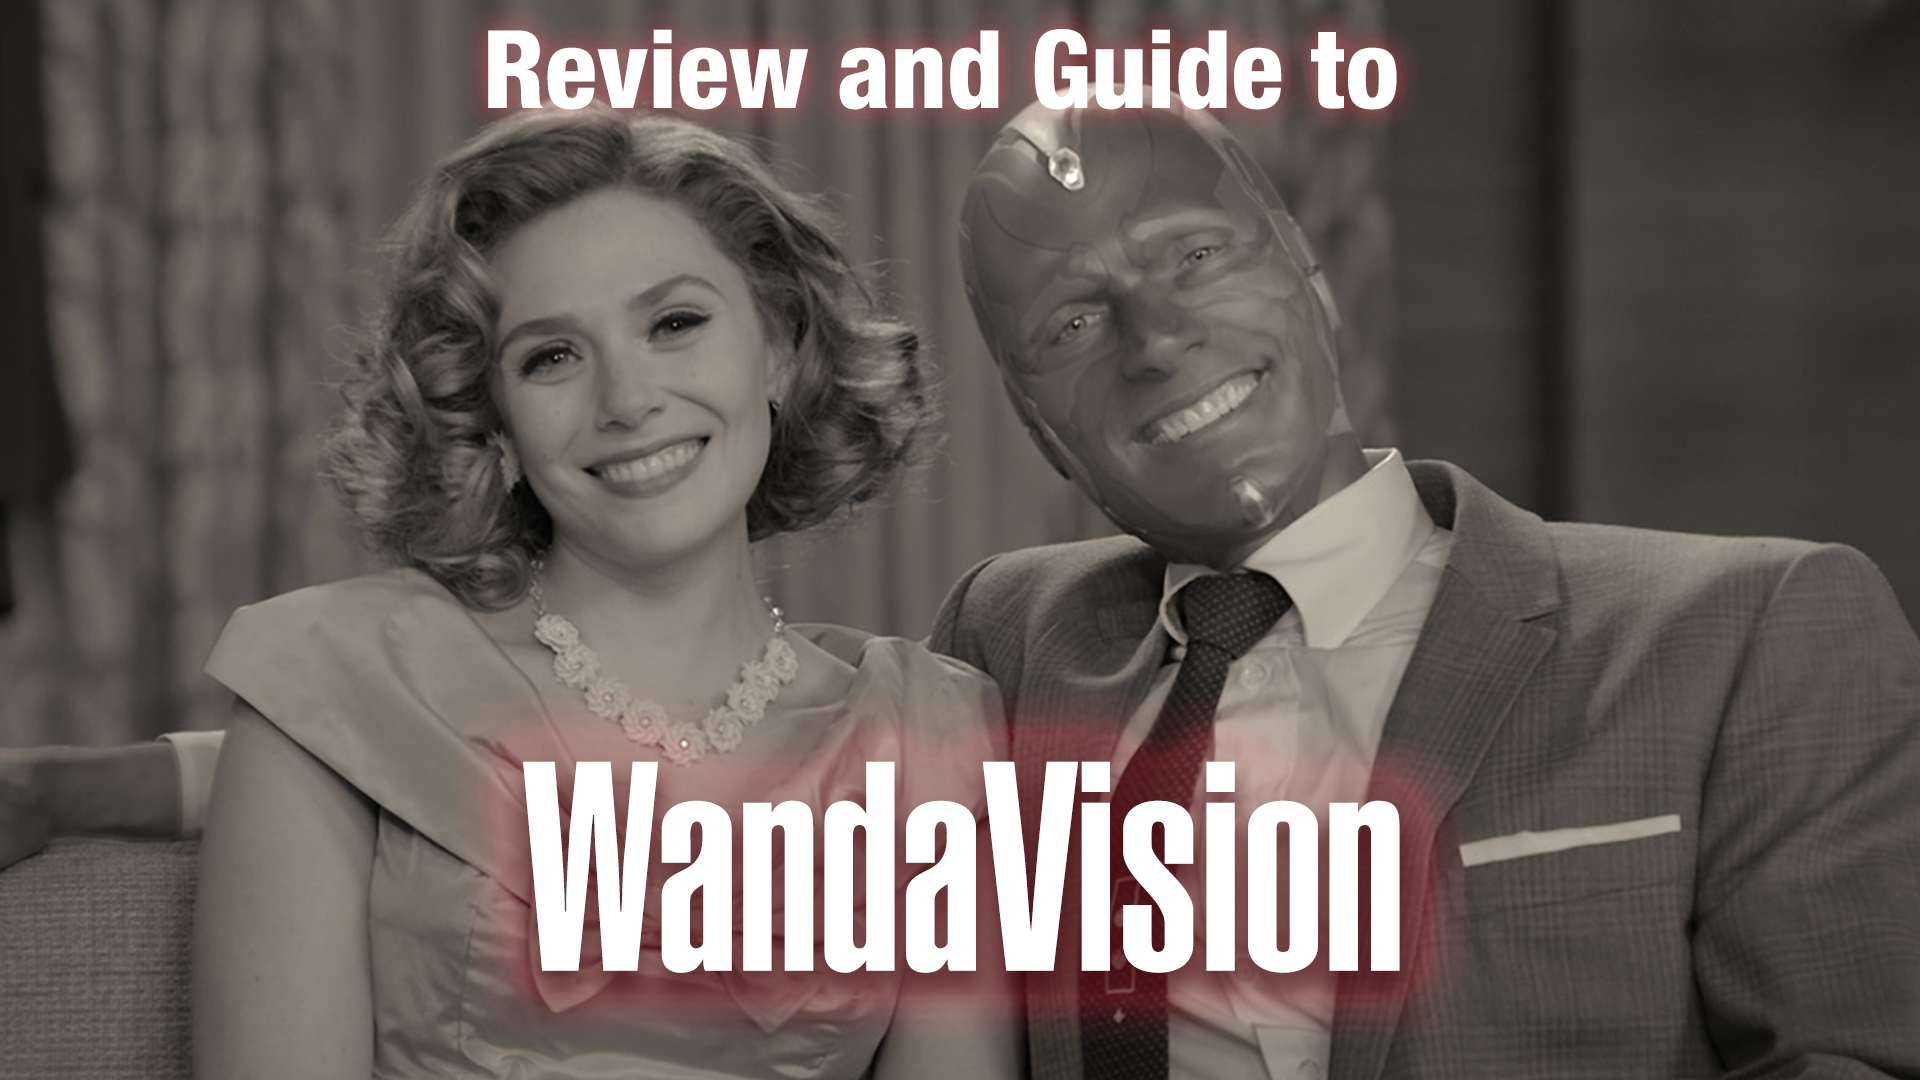 A Review and Guide to WandaVision – Marvel's New Series on Disney Plus